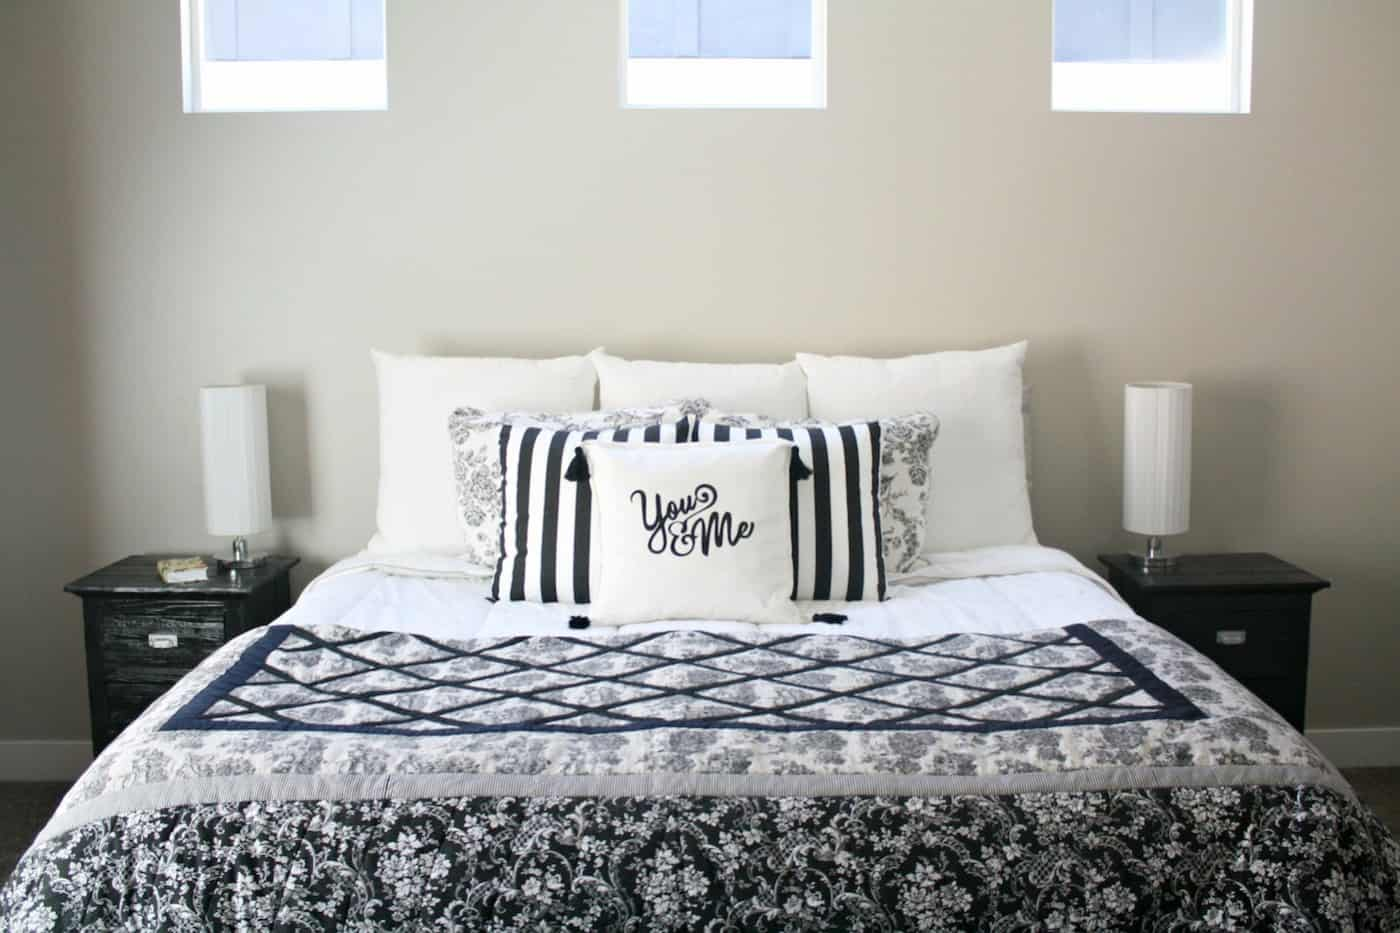 Using heat transfer vinyl, this tutorial for a graphic pillow cover with tassels couldn't be easier, and will add the sweetest personal touch to your home!